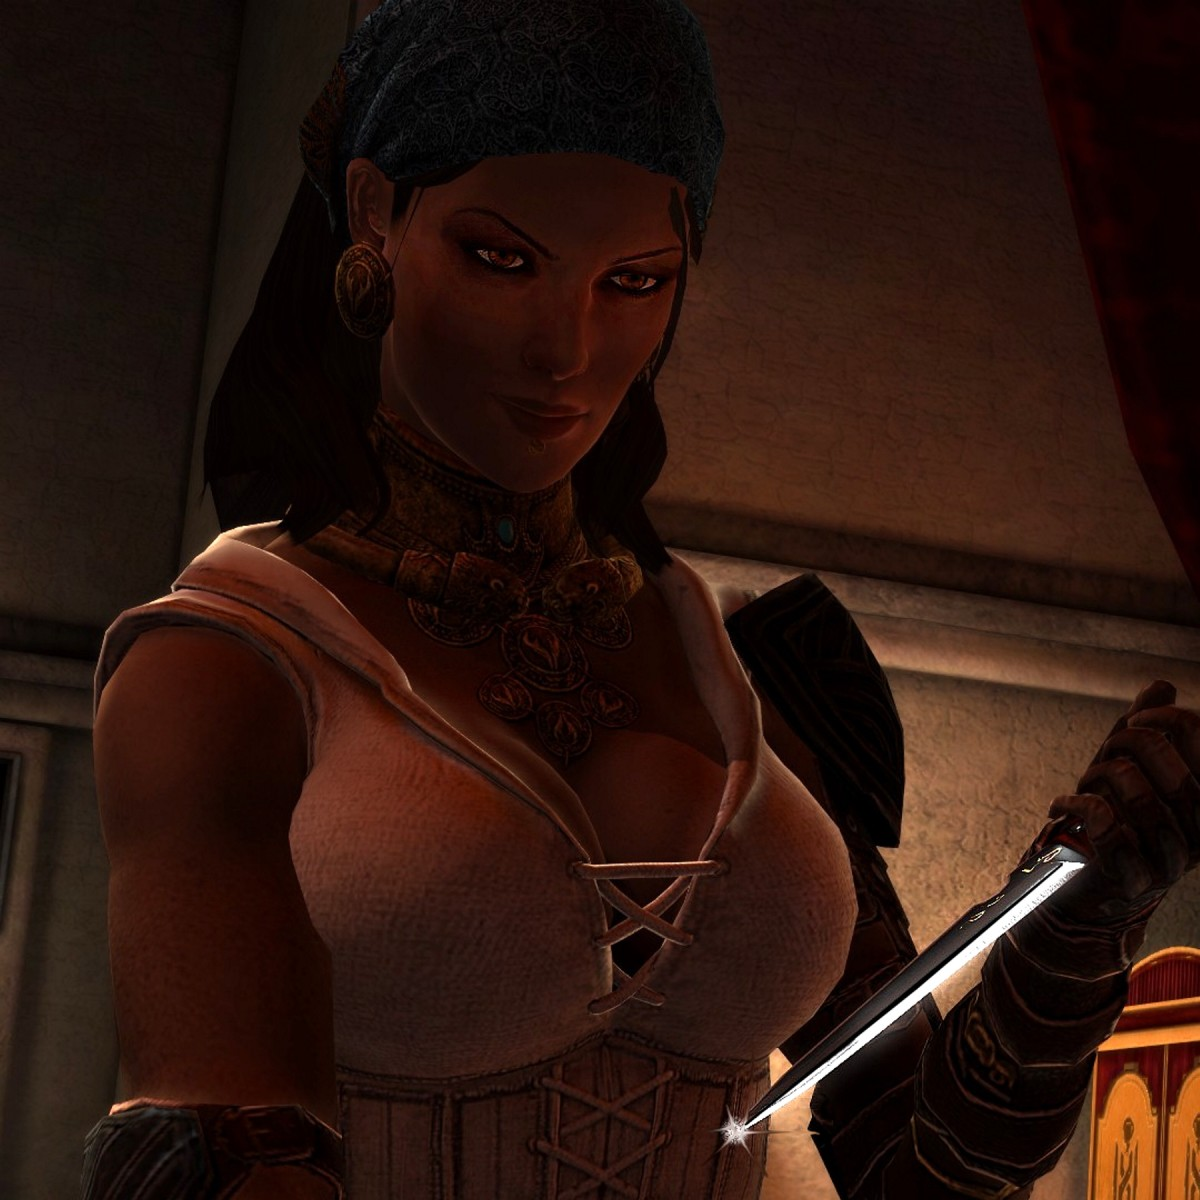 Isabela and her giant boobs.